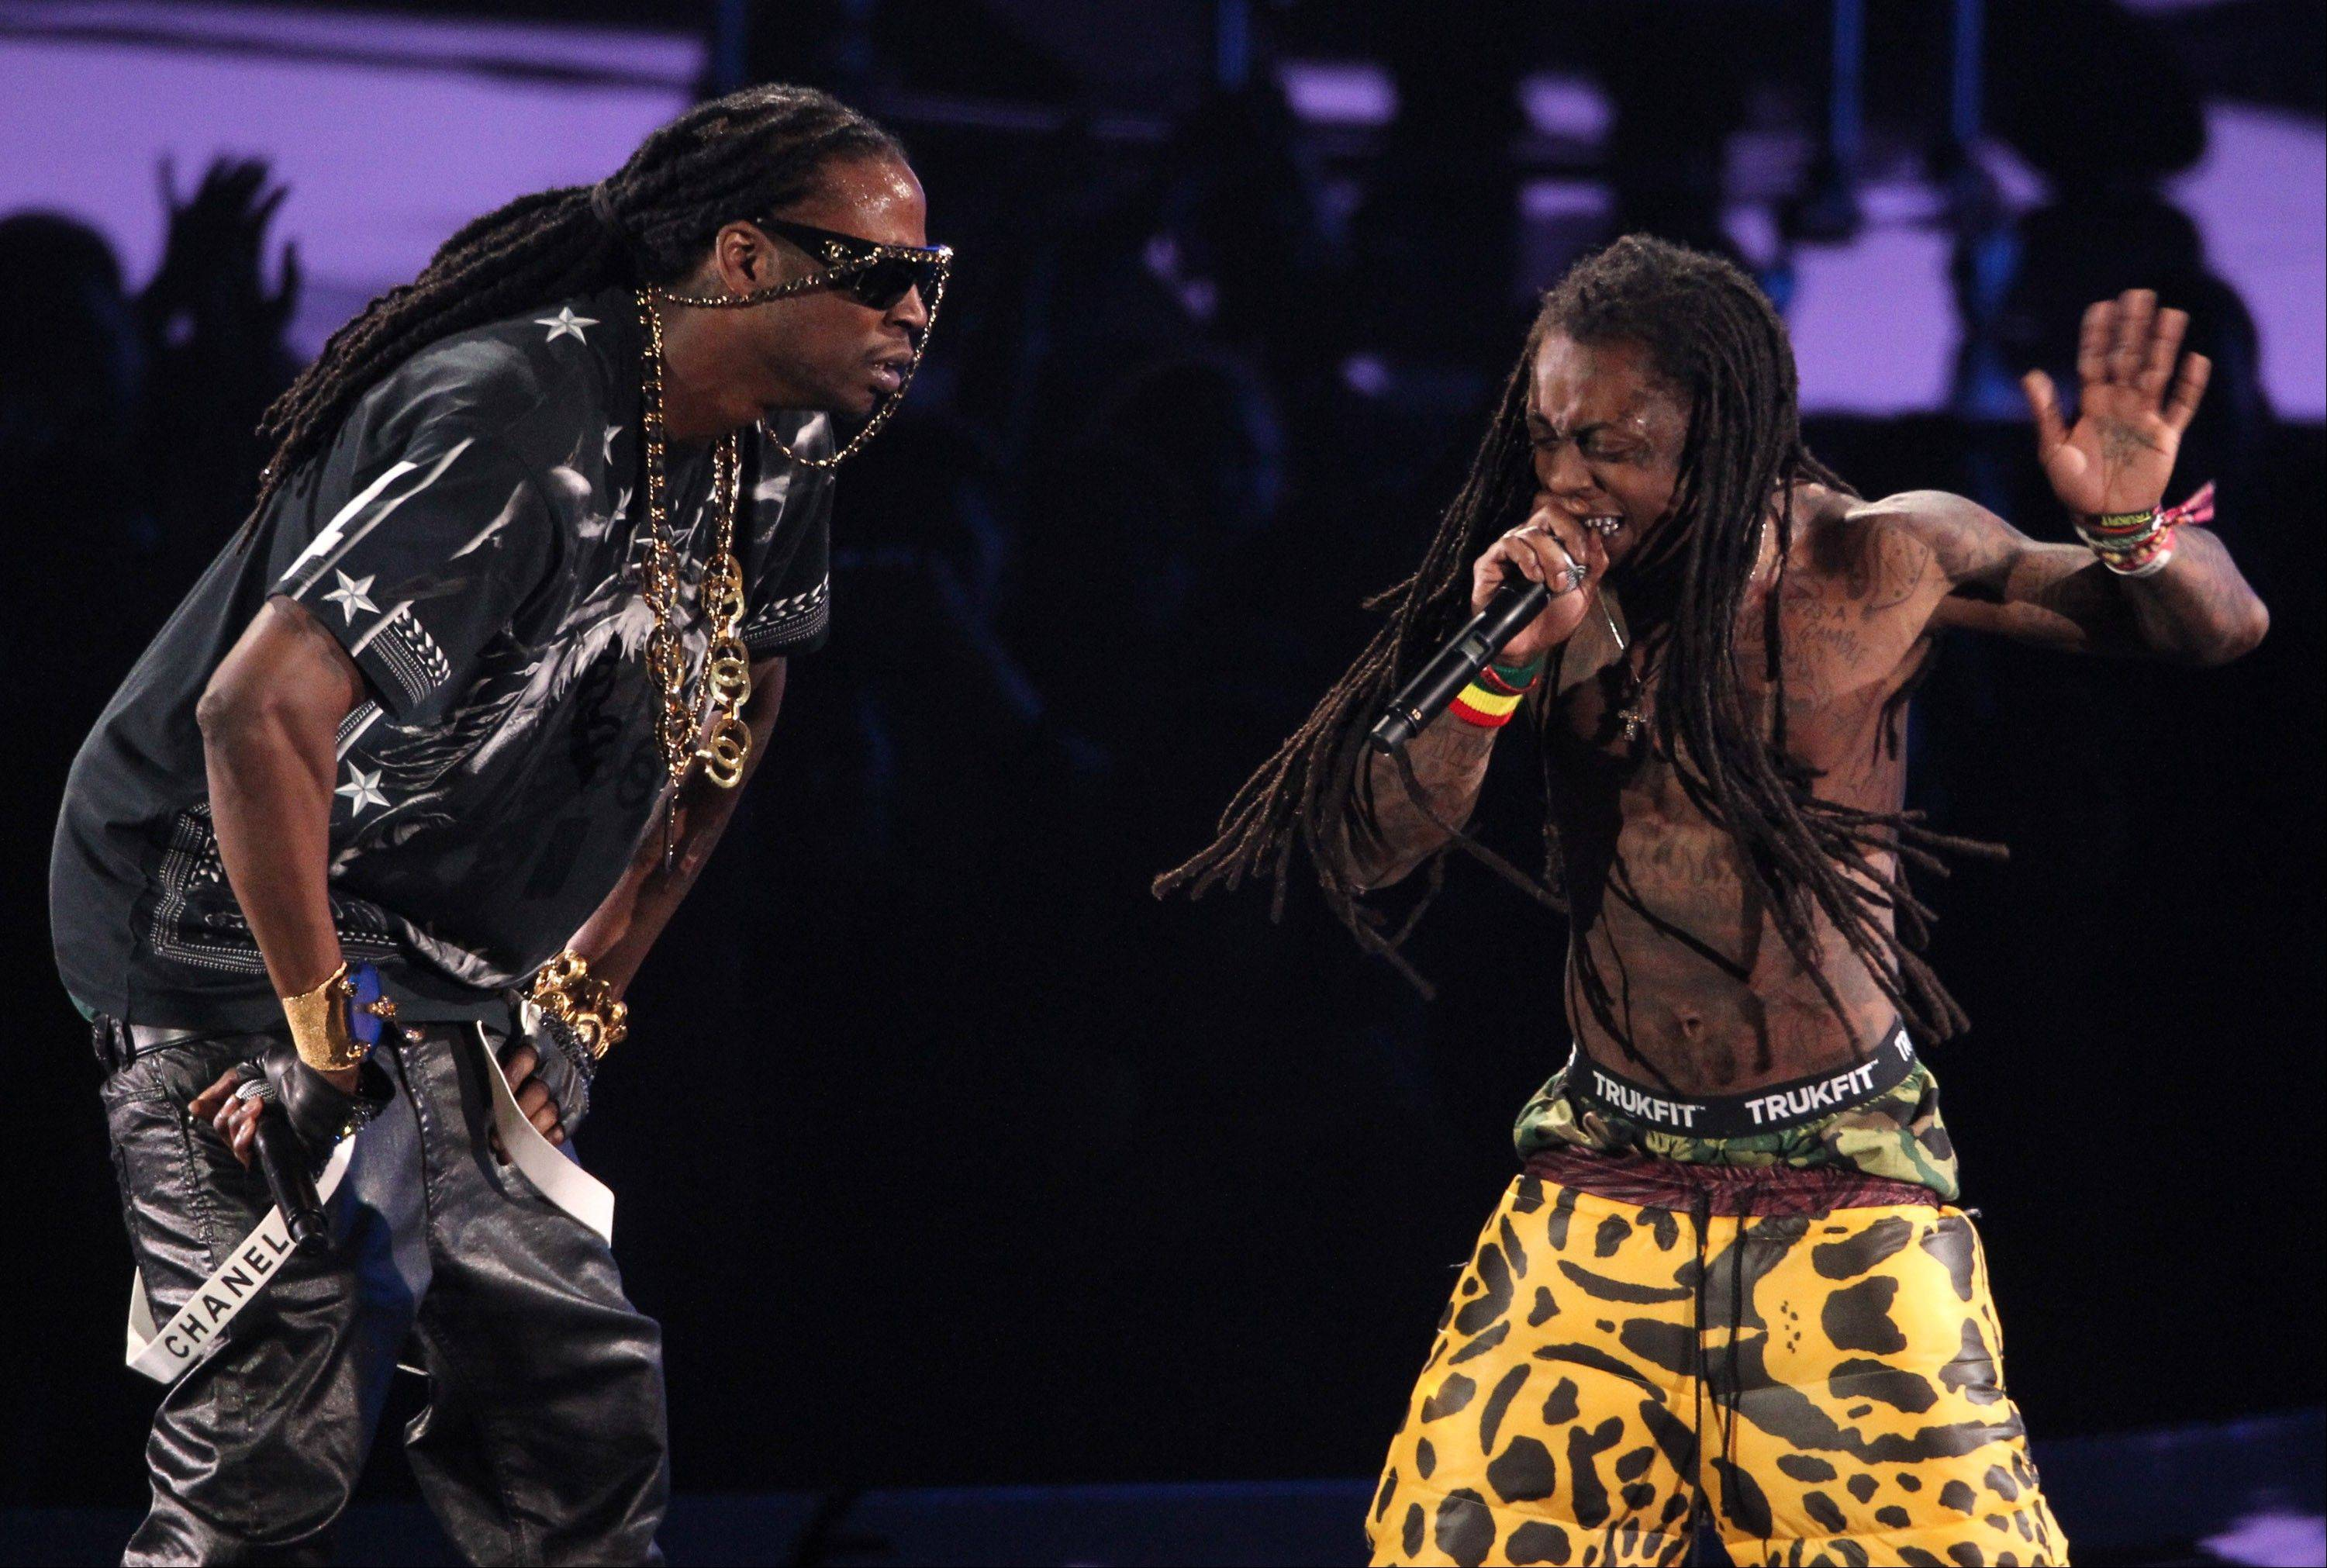 Lil Wayne, right, and 2 Chainz perform onstage at the MTV Video Music Awards on Thursday, Sept. 6, 2012, in Los Angeles.